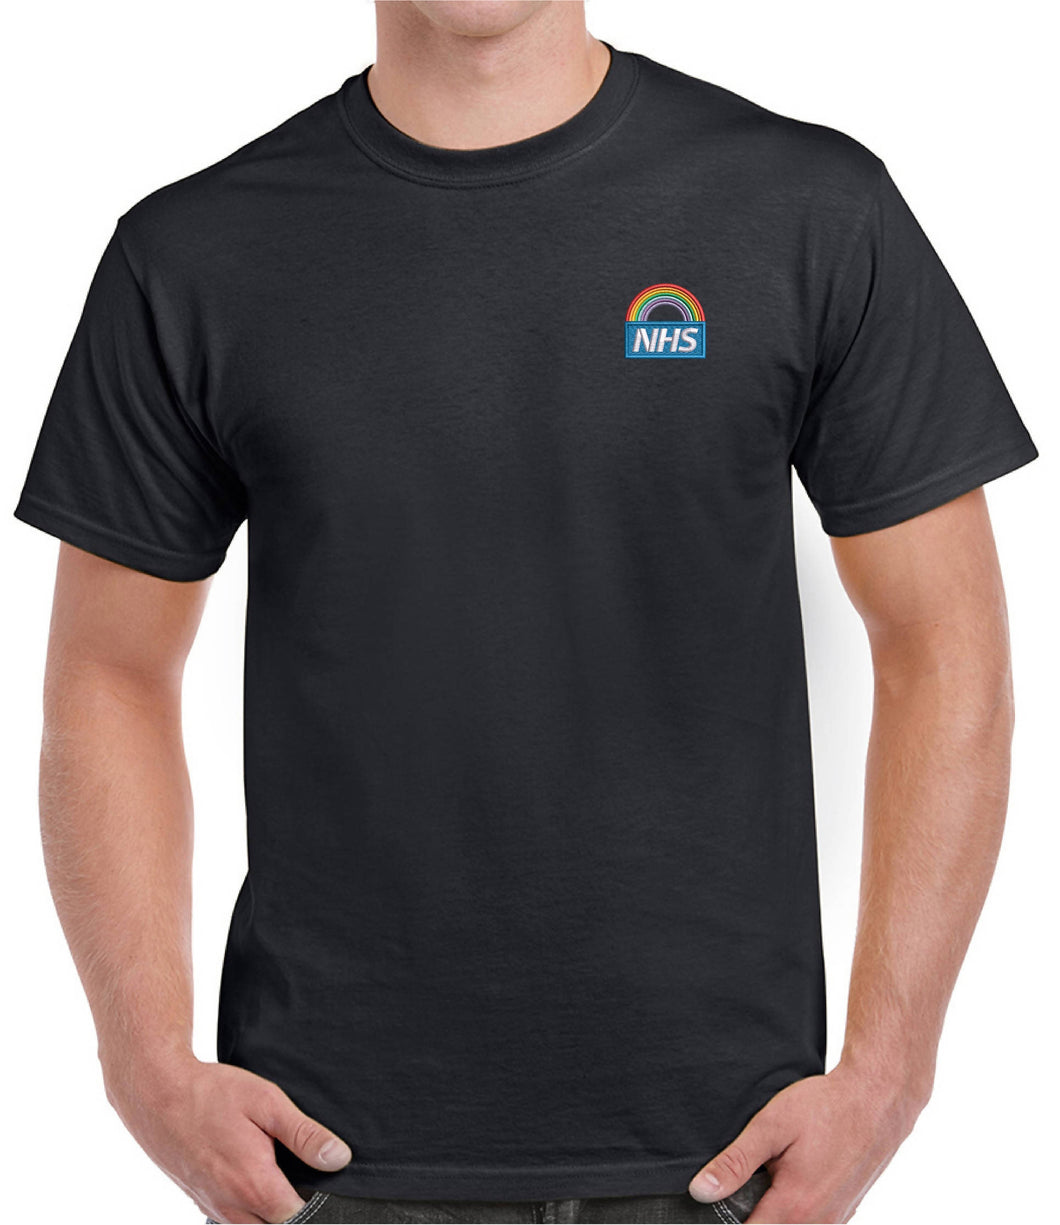 Mens Basic Short Sleeve Rainbow T-shirt